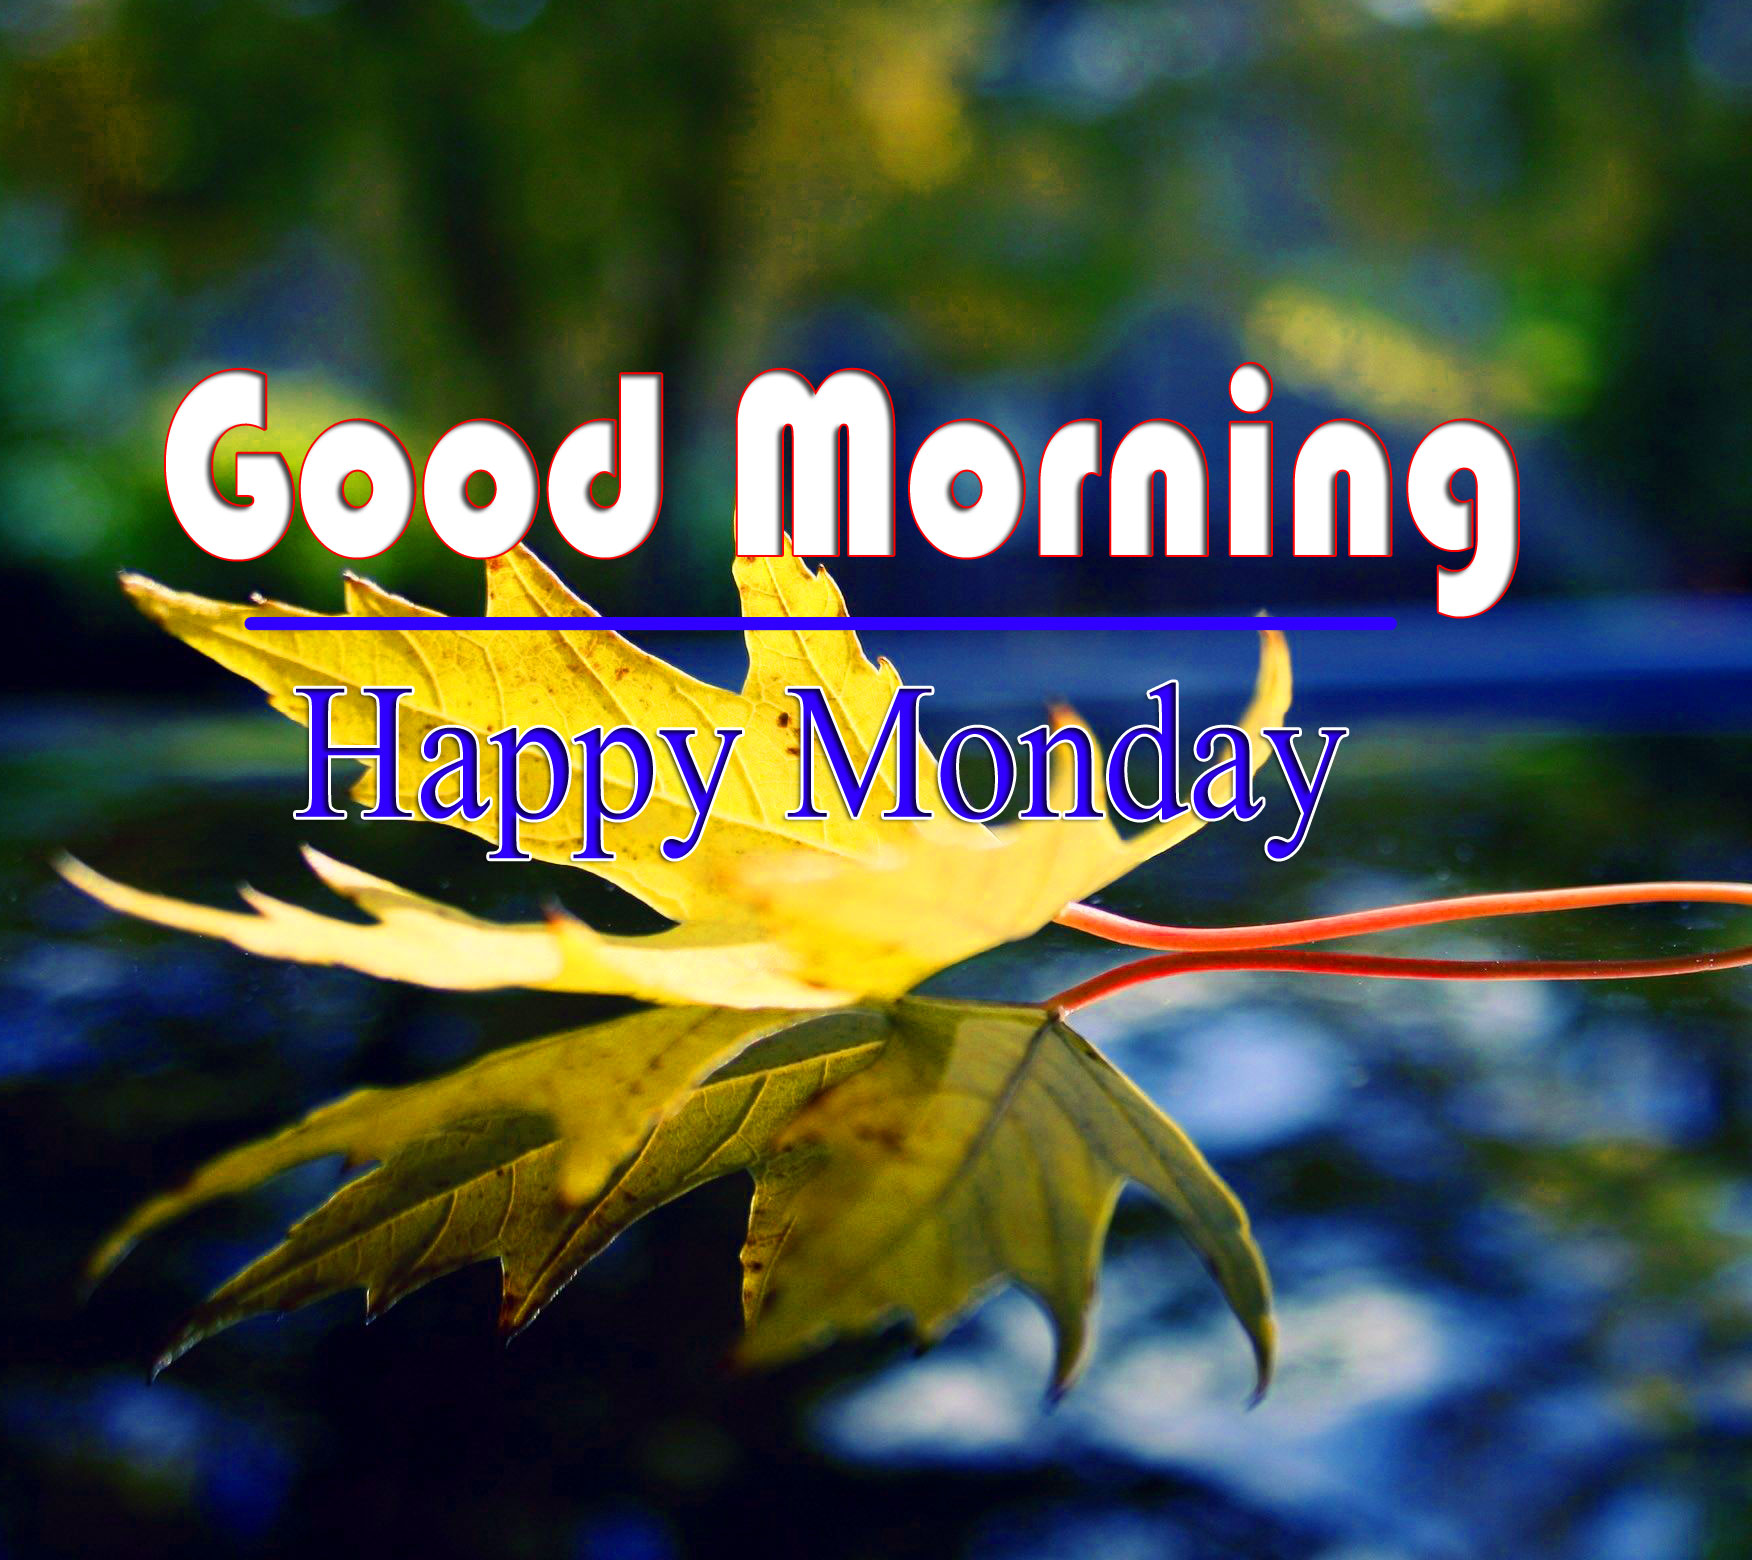 2021 HD Monday Good Morning Images